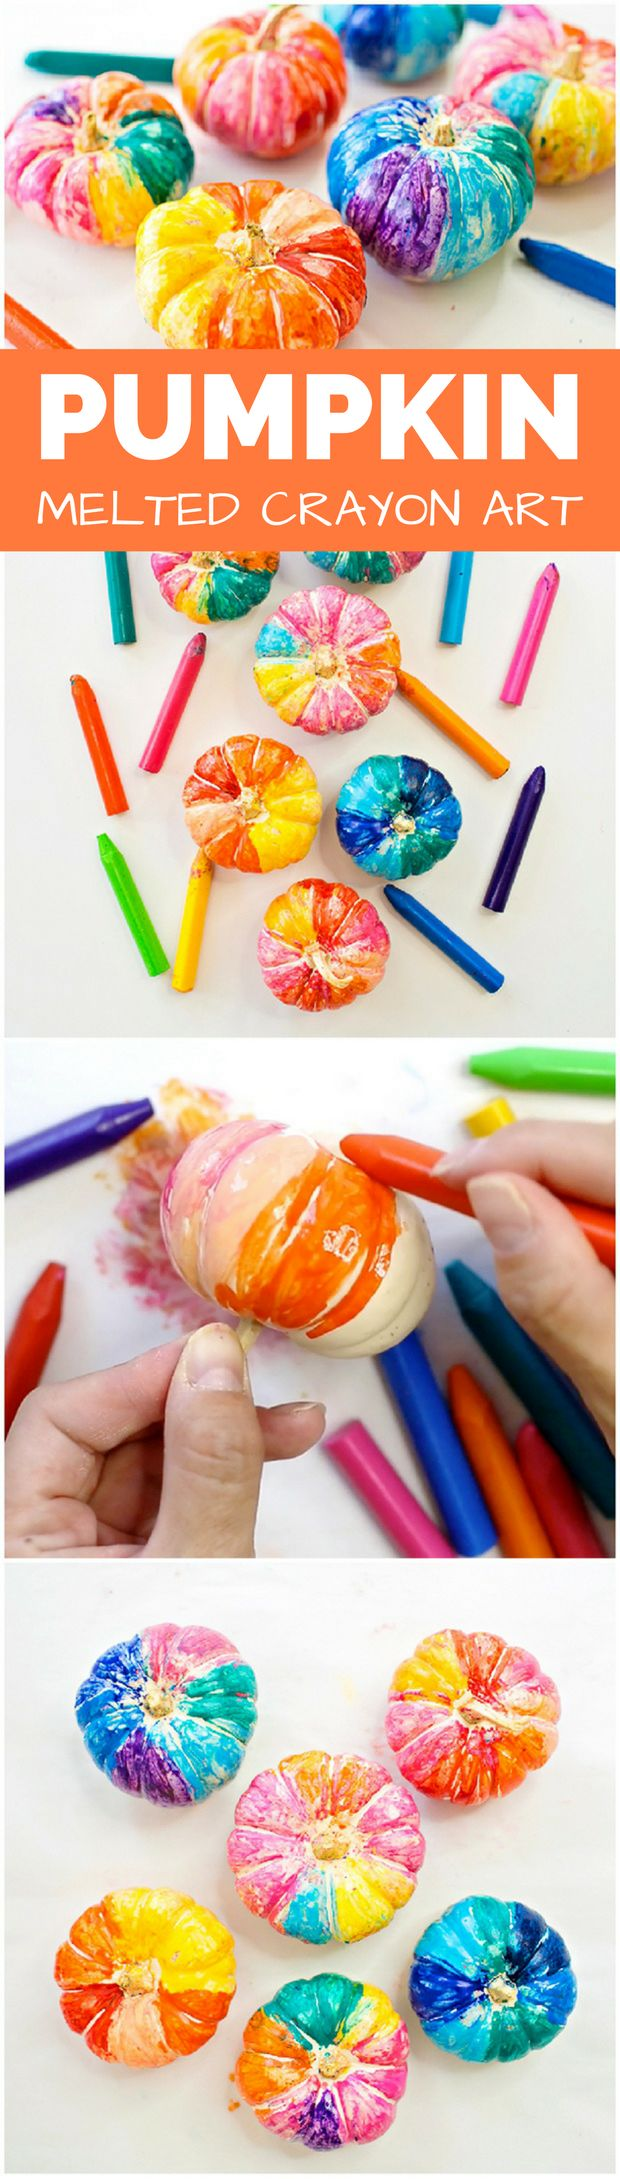 Hot Pumpkin Melted Crayon Art. Create colorful pumpkins with this fun and easy art process. Cute no carve pumpkin idea for kids.